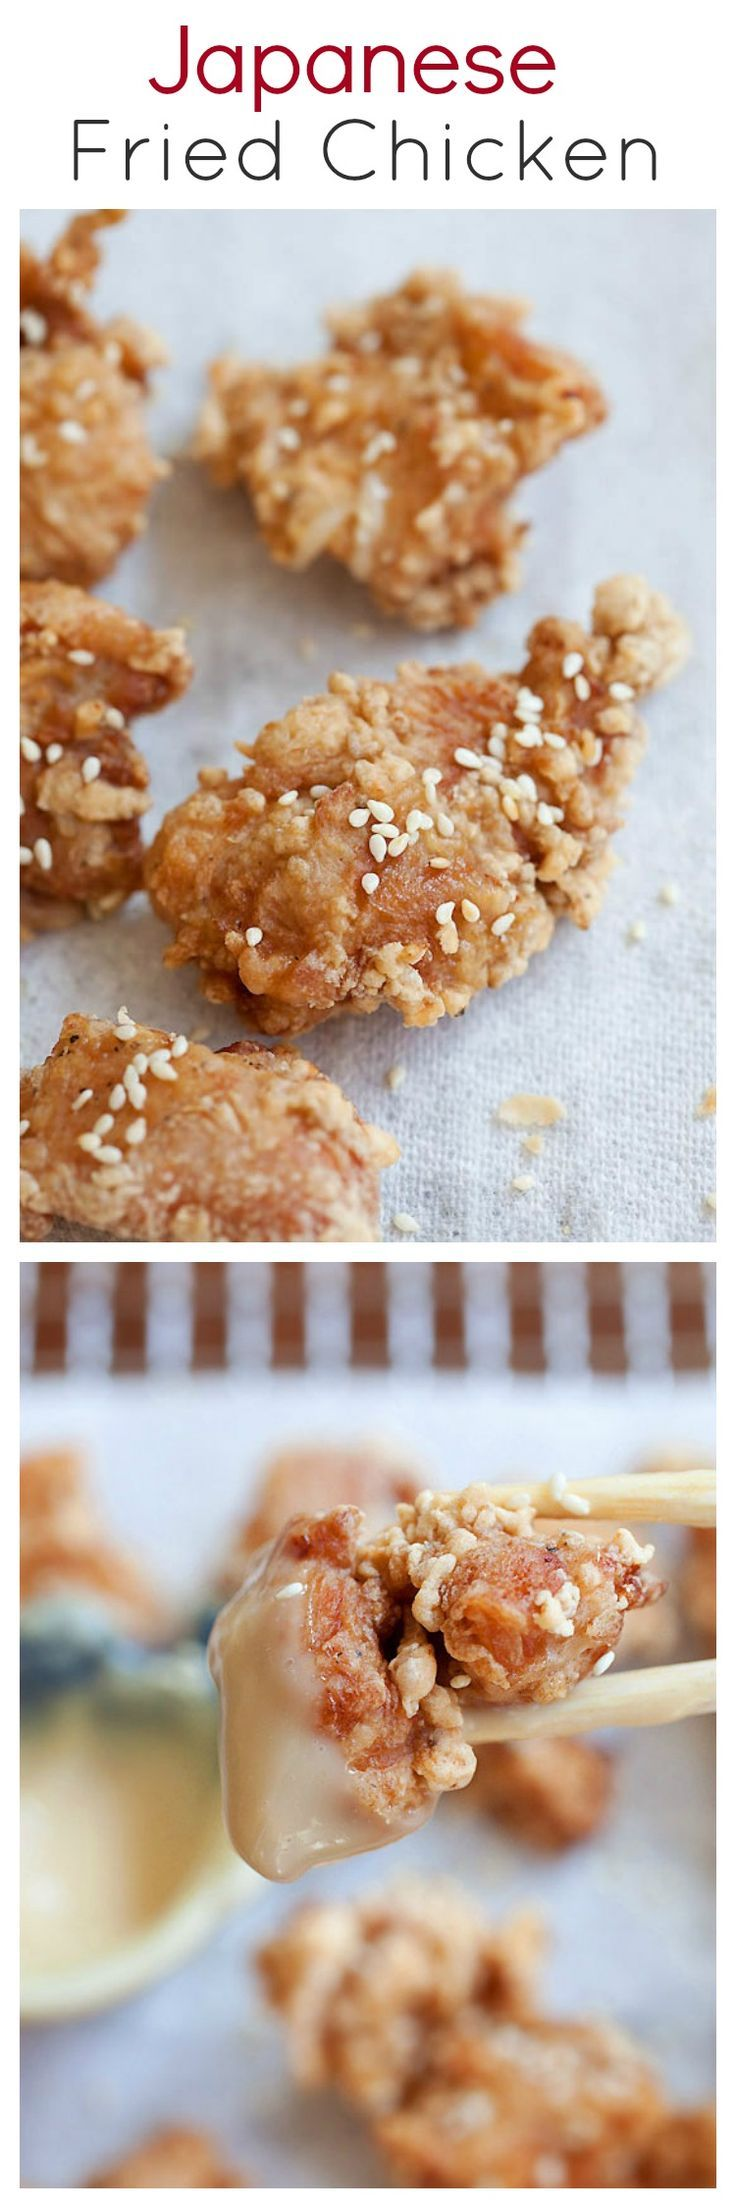 Crispy, juicy, and CRAZY DELICIOUS Japanese fried chicken recipe, with miso mayonnaise dip | http://rasamalaysia.com